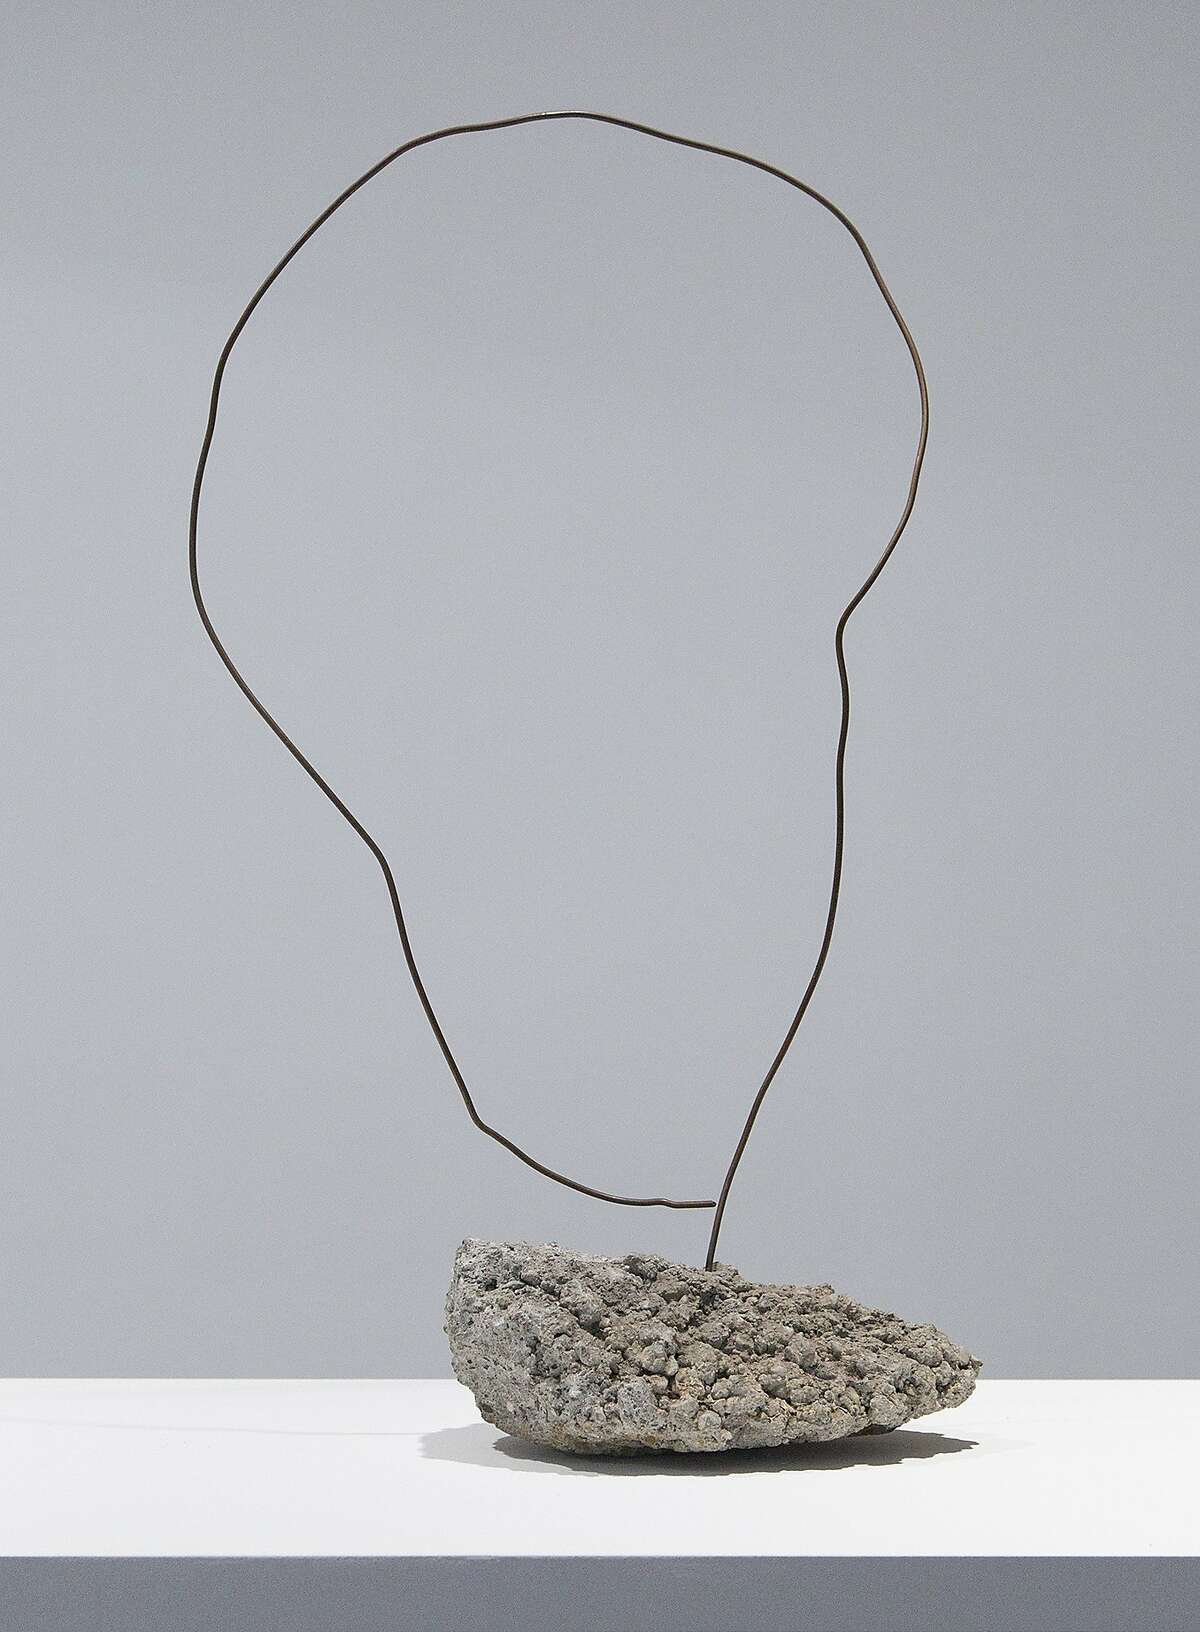 An untitled work by David Ireland, on view at San Francisco Art Institute, epitomizes his use of such simple materials as wire and concrete. The form refers to an elephant's ear or a map of Africa.